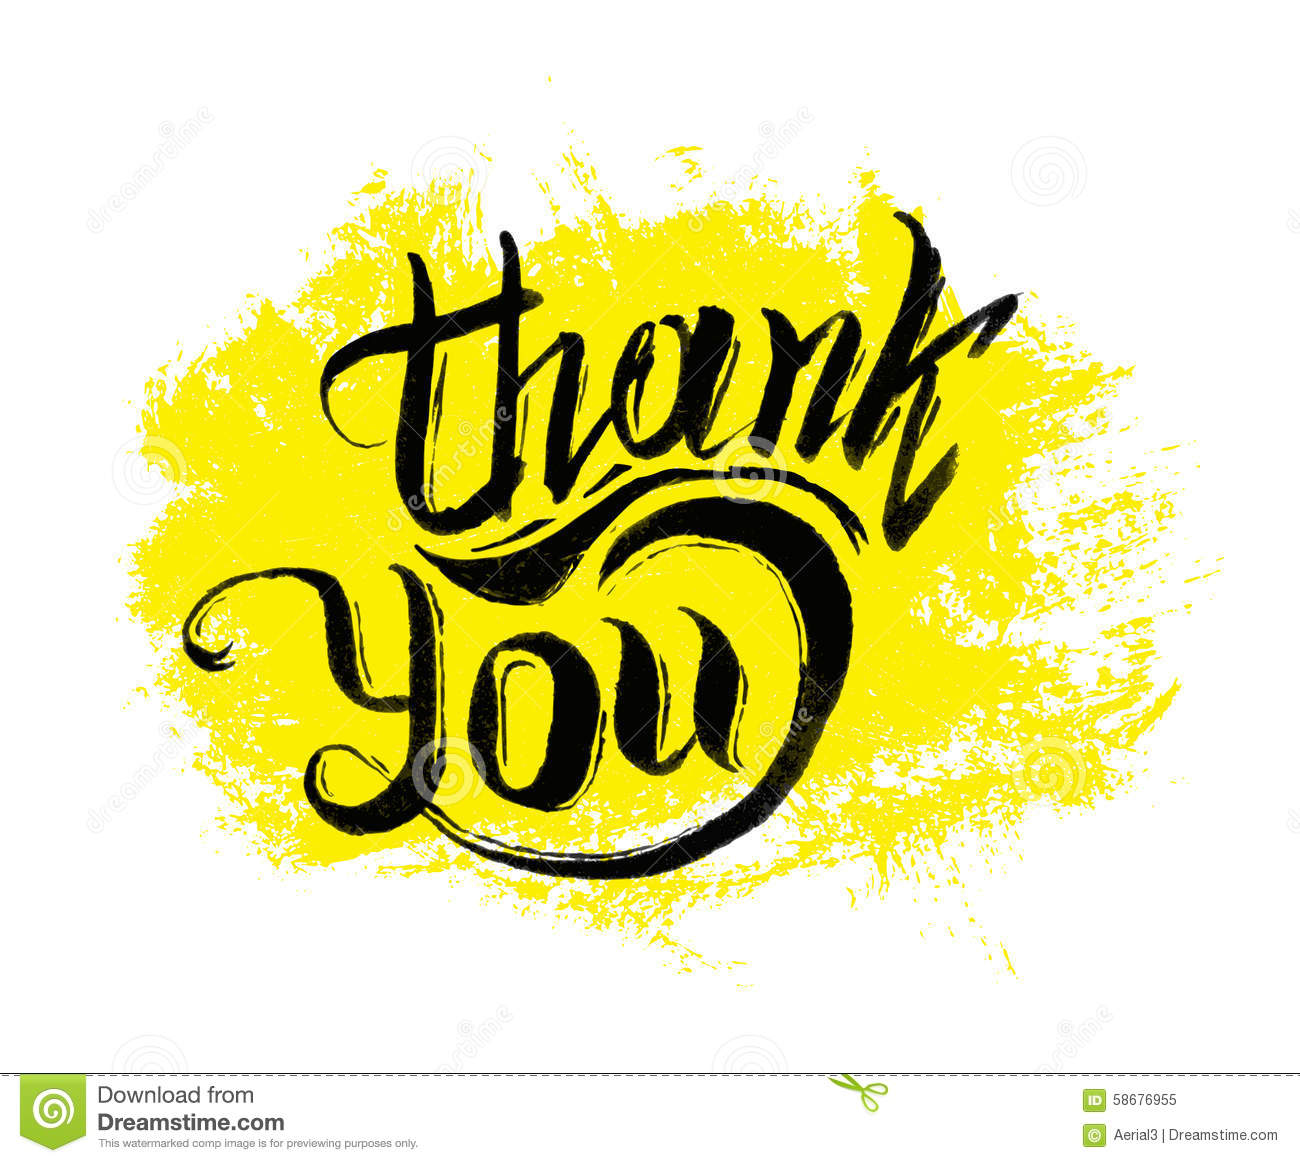 Thank you ink hand drawn lettering stock vector illustration of thank you ink hand drawn lettering kristyandbryce Image collections